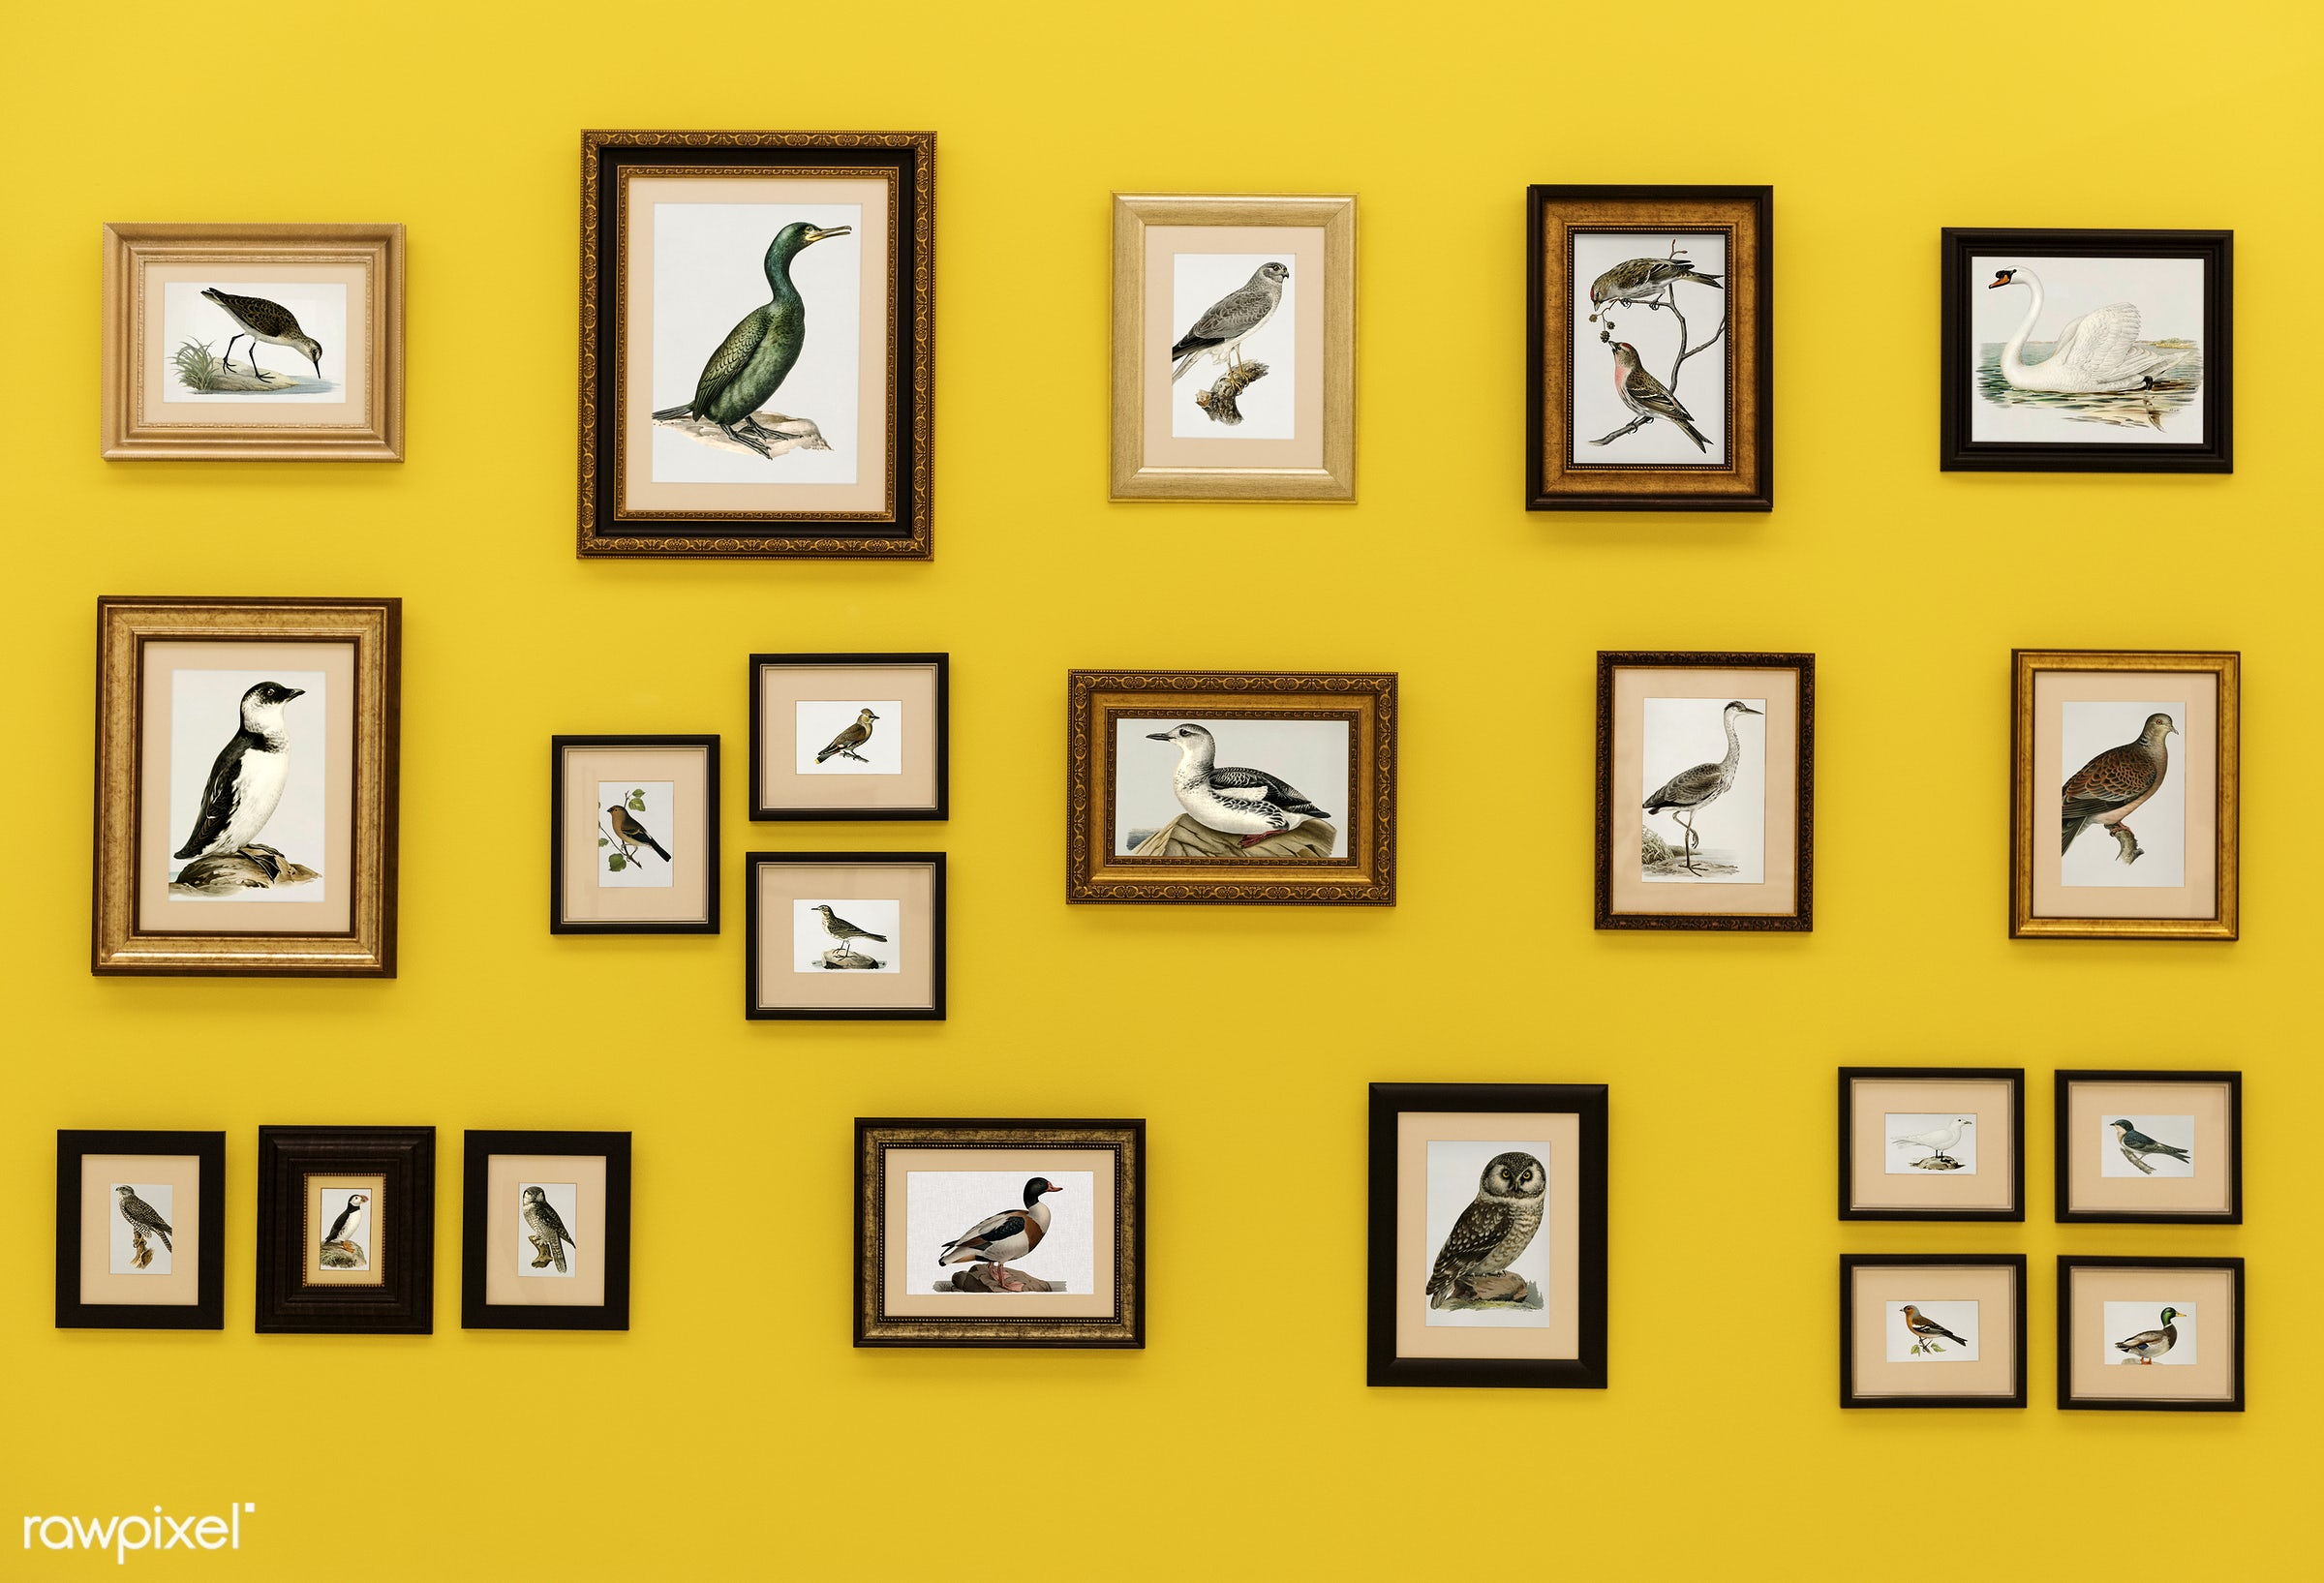 Pictures of birds in frames hanging on yellow wall - ID: 295378